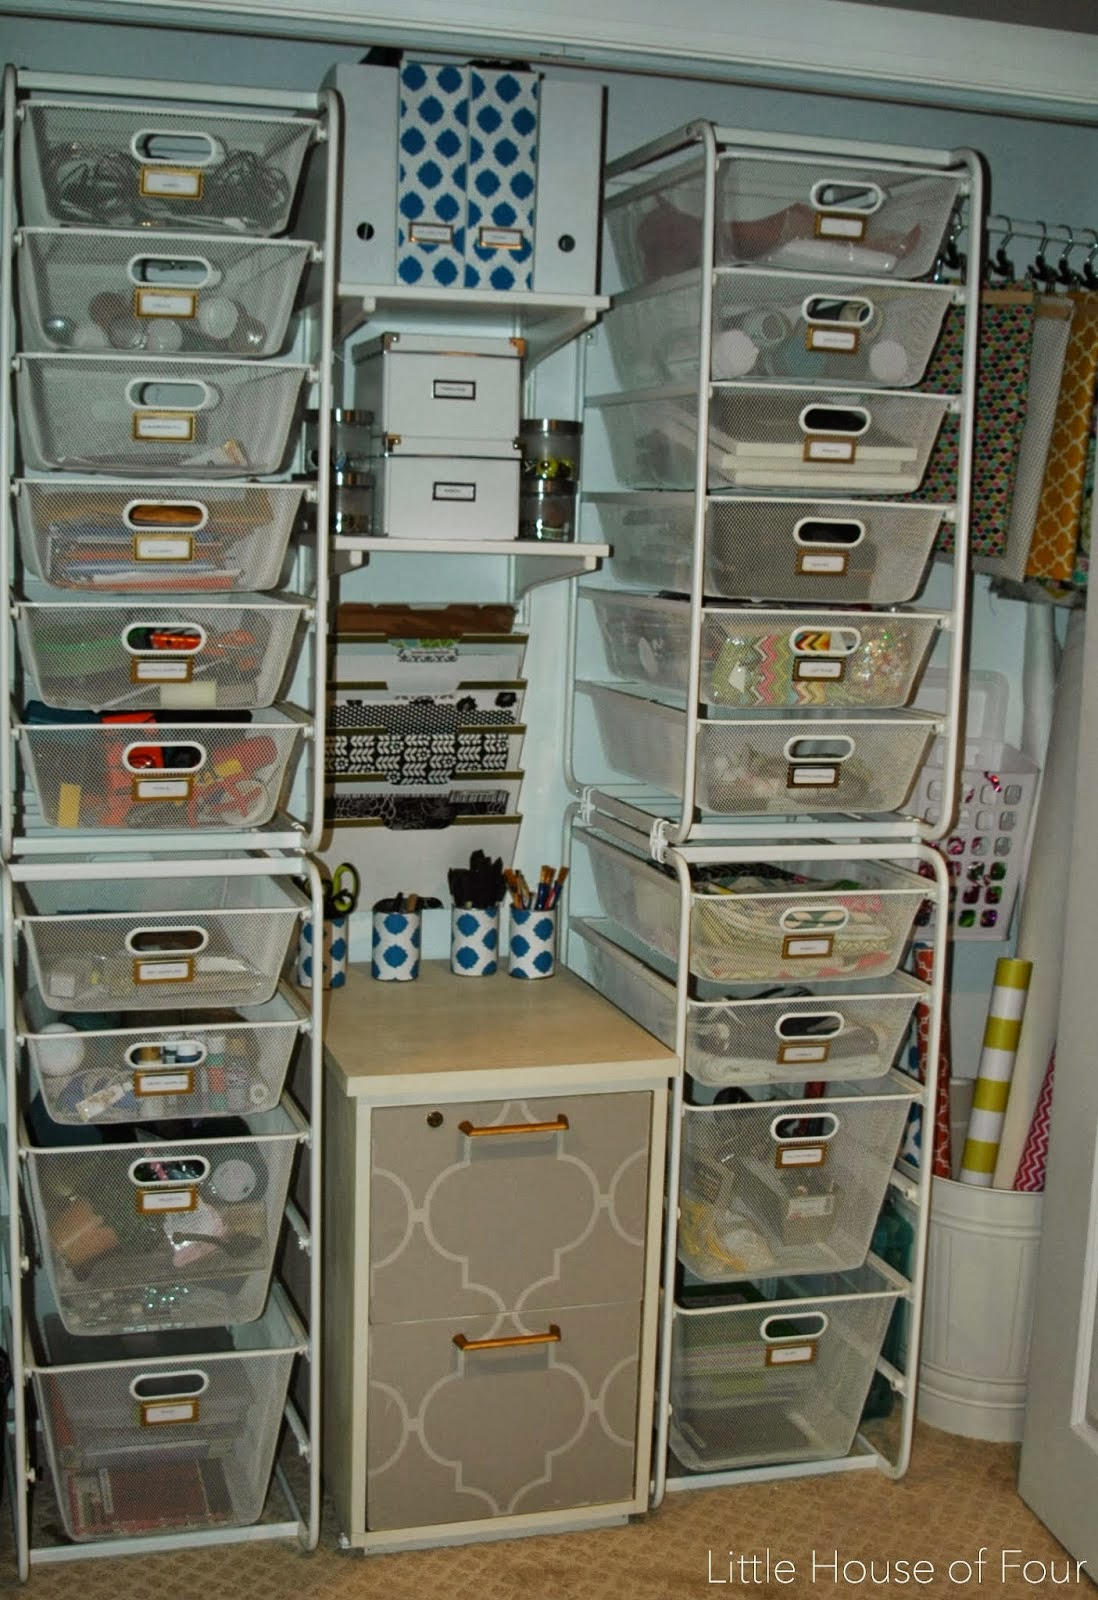 Two shelfves with bines and drawers full of supplies.